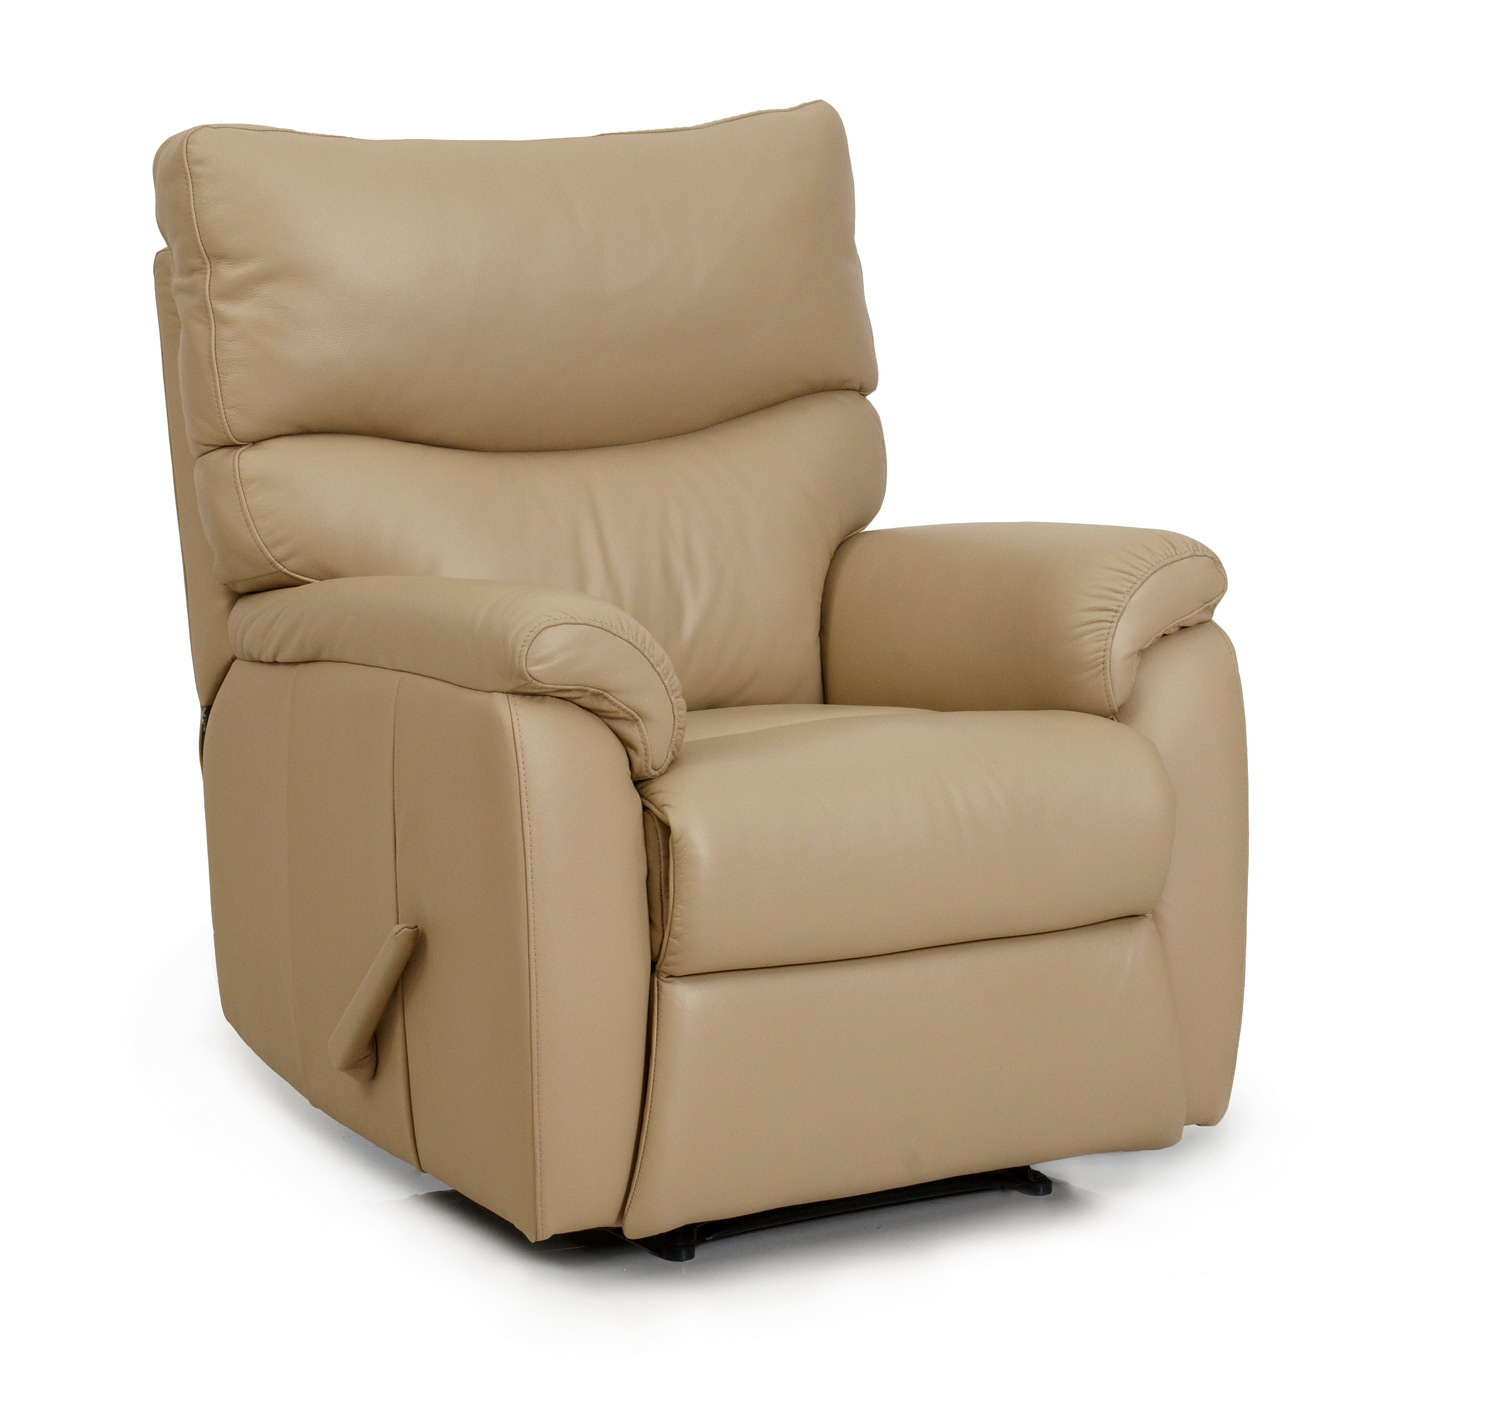 Barcalounger Bourne Ll Layflat Casual Comforts Recliner